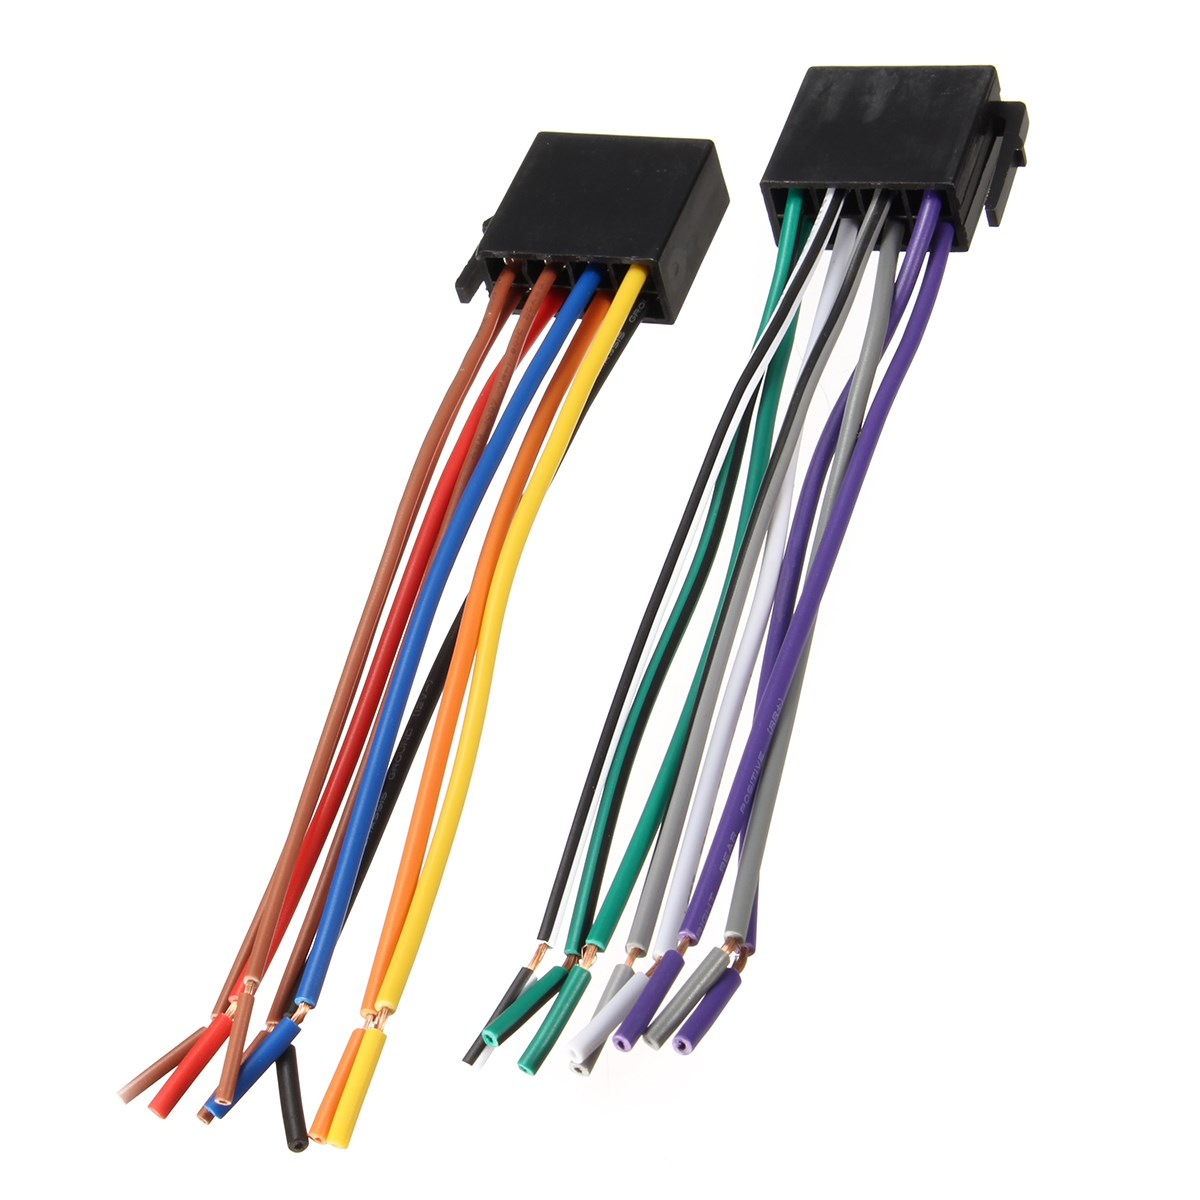 Universal Wire Harness Adapter Connector Cable Radio Wiring Connector Plug for Auto Car Stereo System universal wire harness adapter connector cable radio wiring universal wiring harness connector at mifinder.co